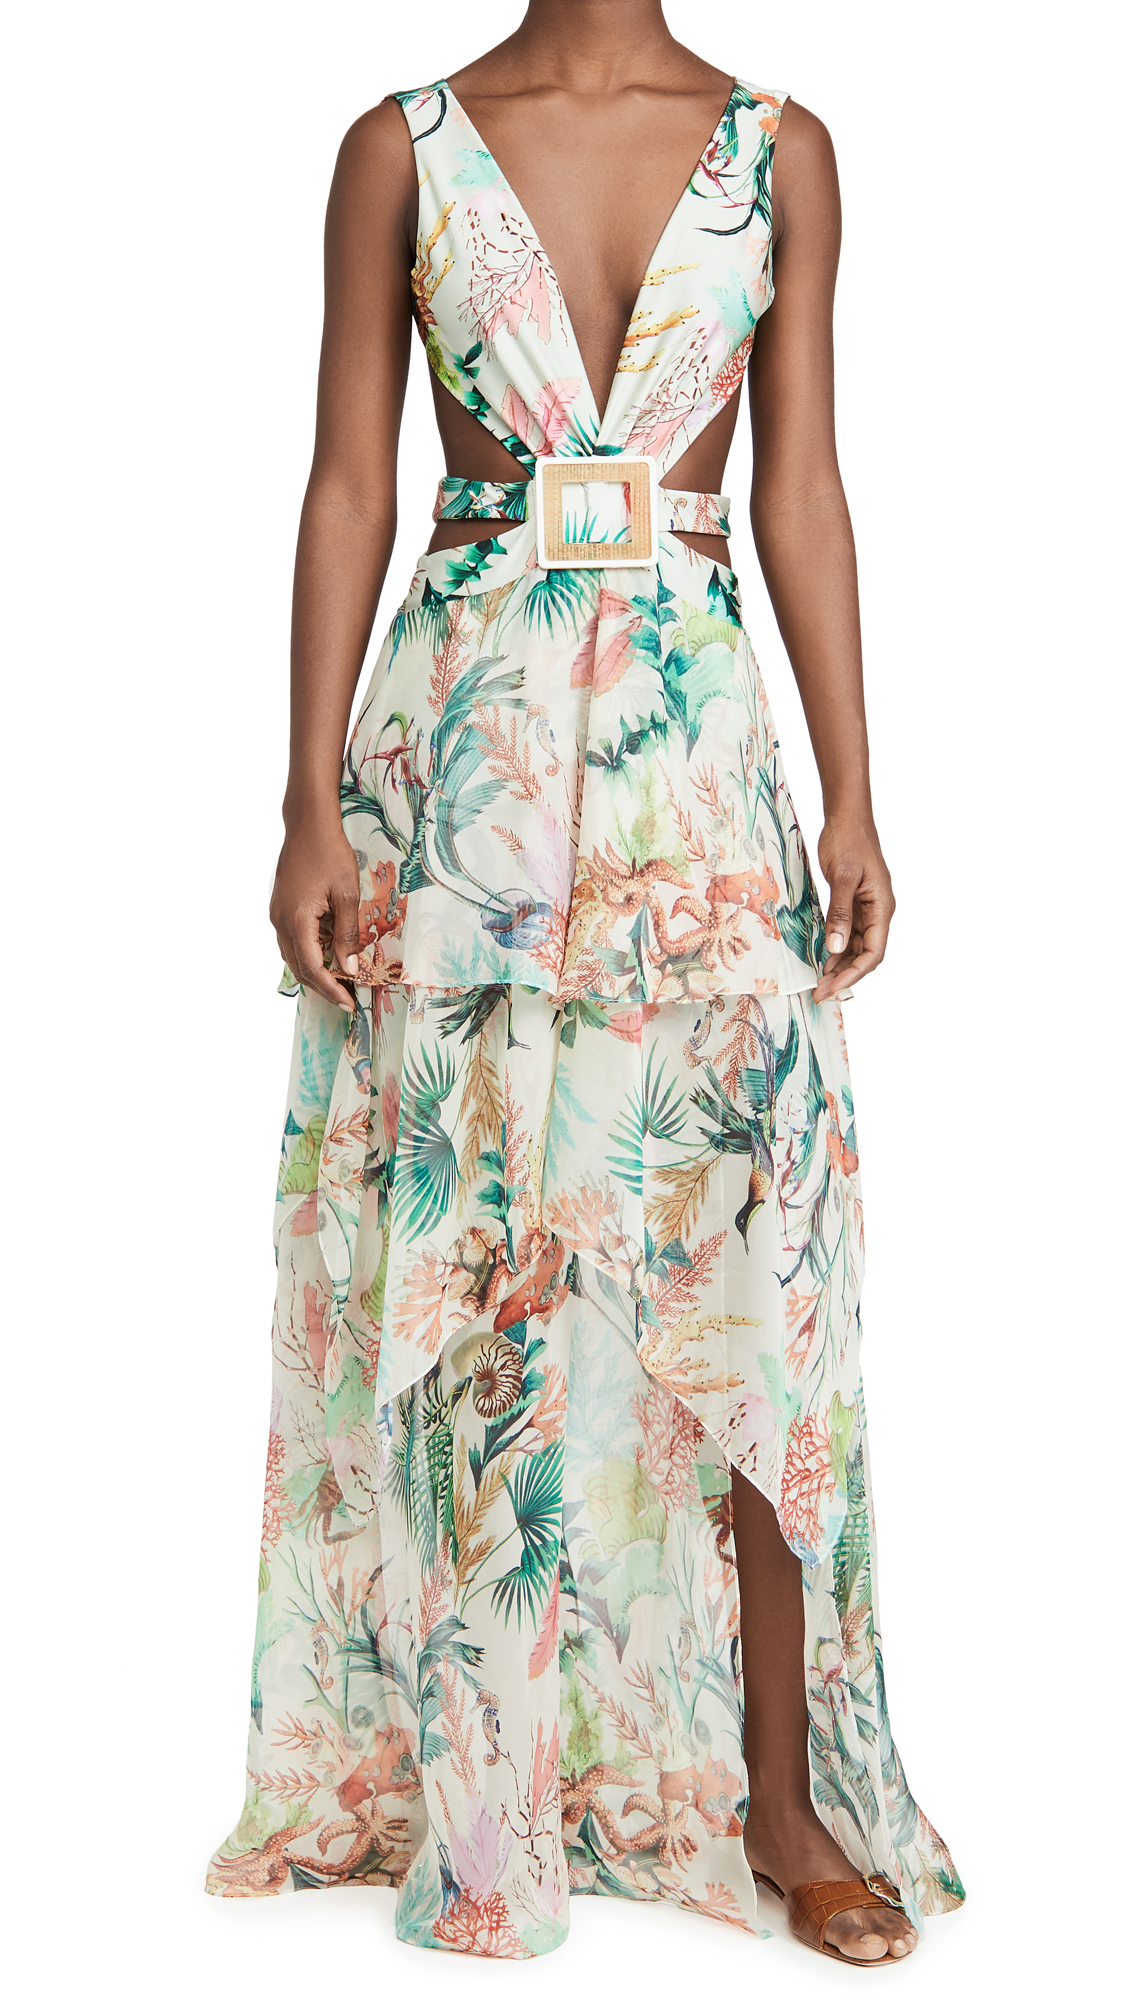 PatBO Oasis Cutout Dress